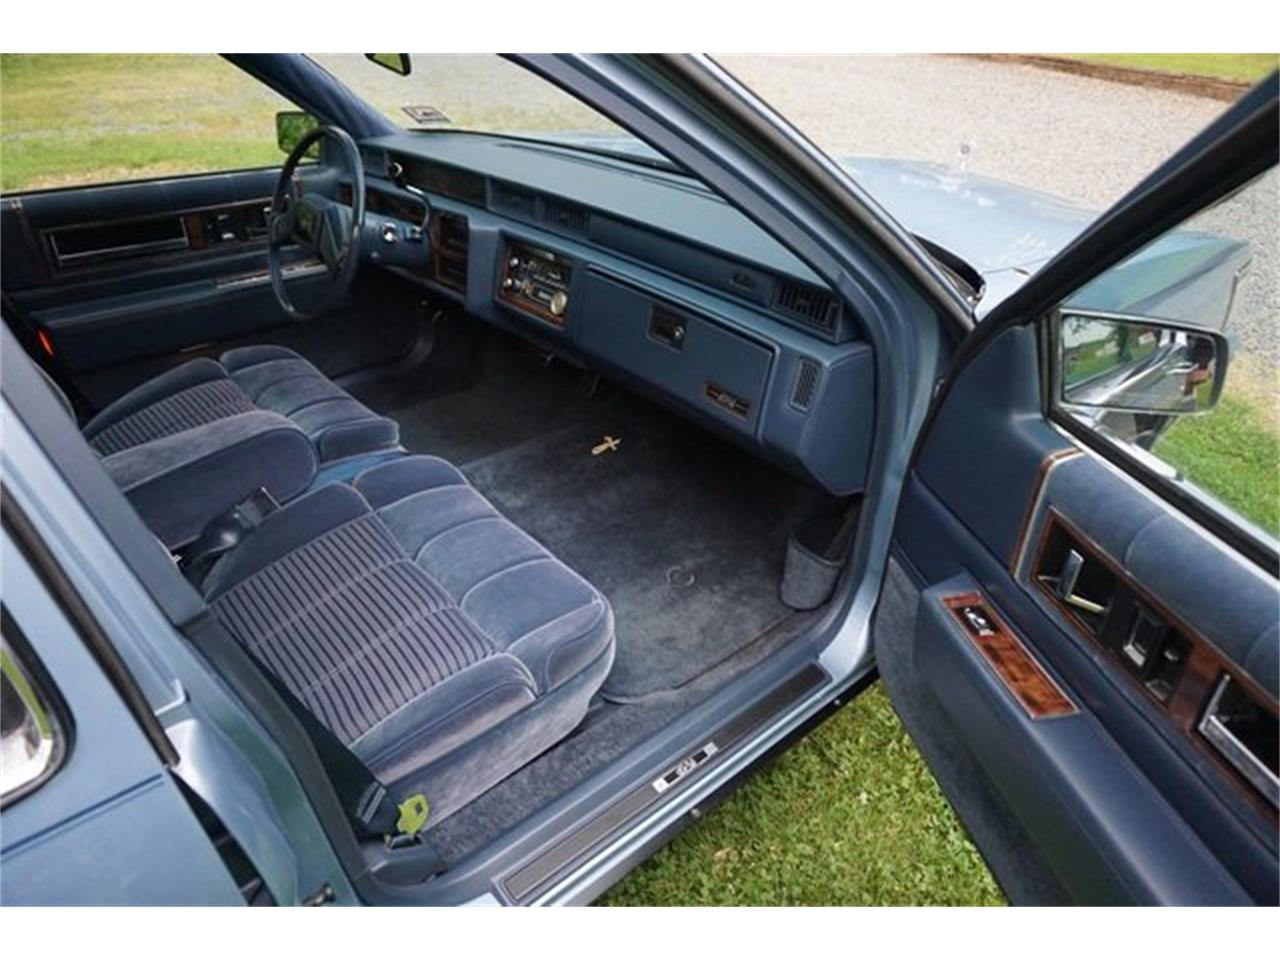 Large Picture of 1987 Cadillac Sedan DeVille located in New Jersey - $8,950.00 - QQIS